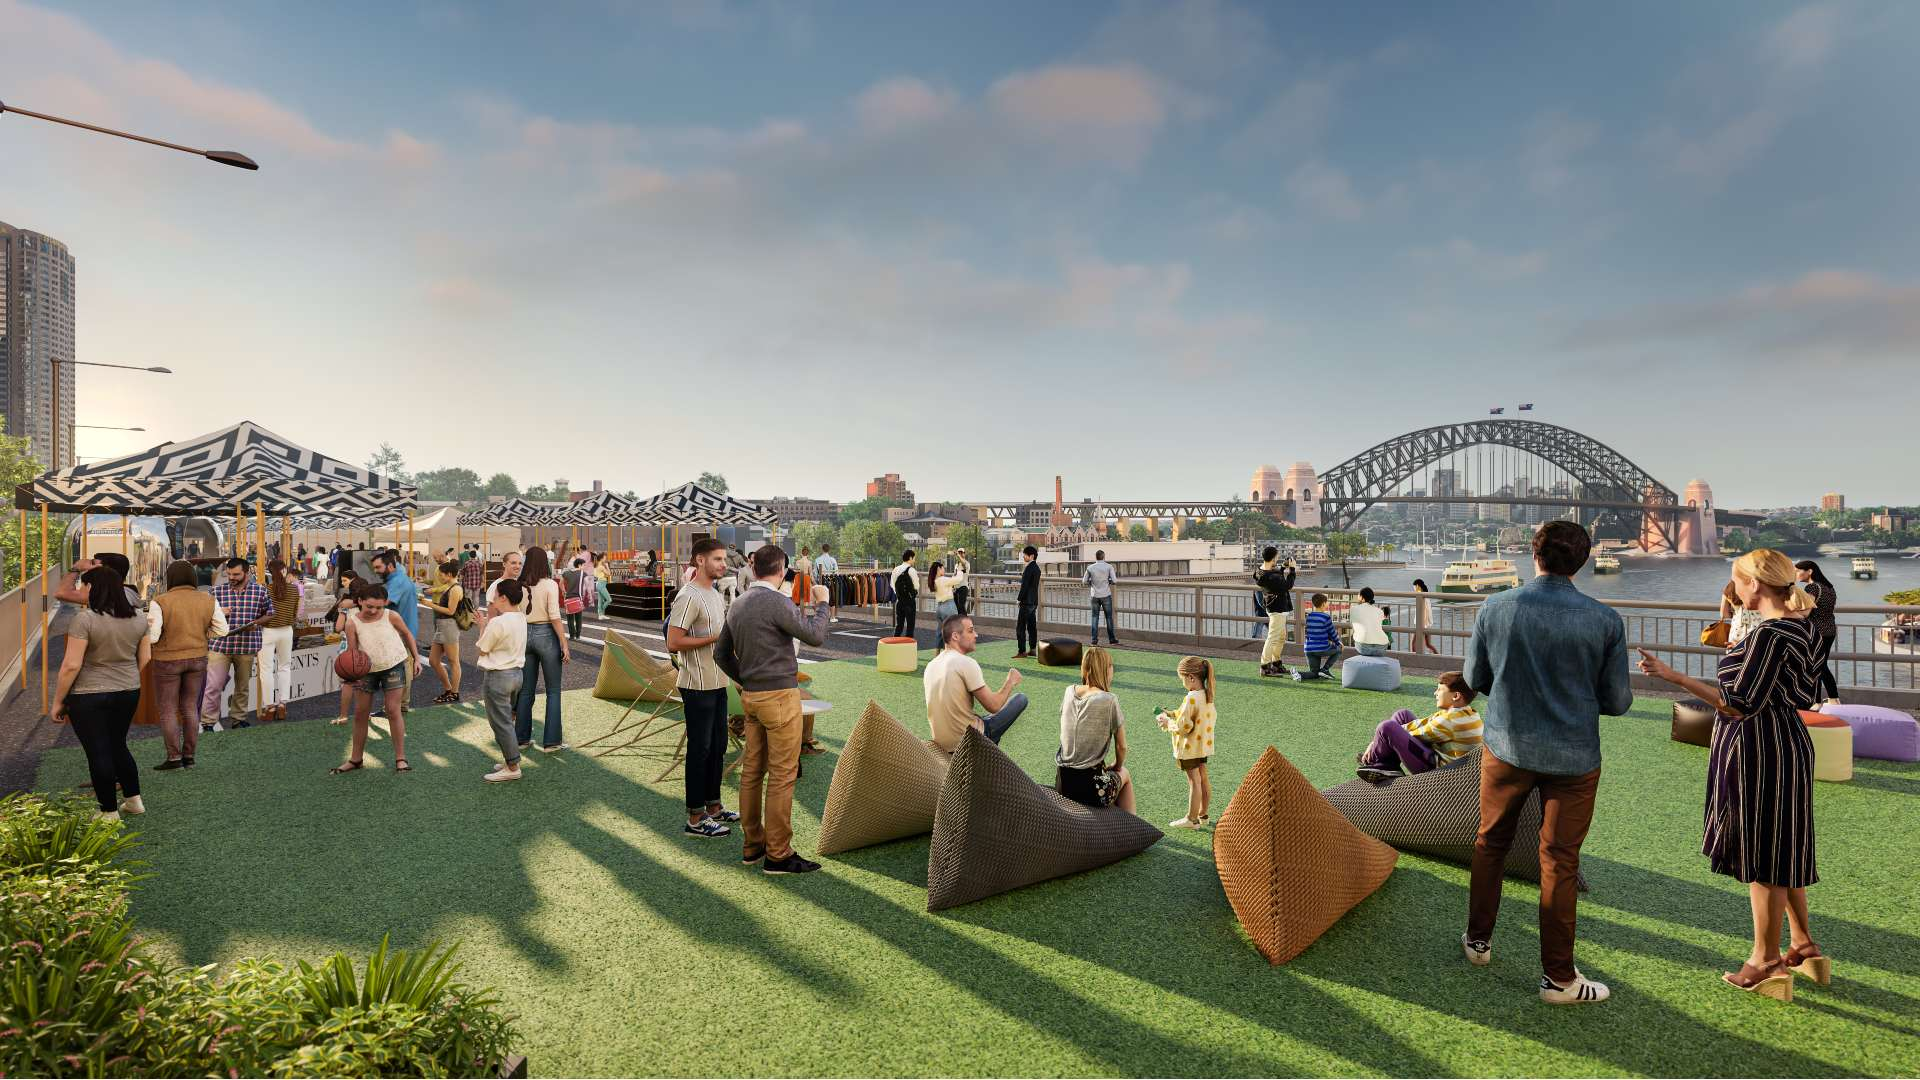 Architectural mapping of Cahill Expressway, sourced via Concrete Playground